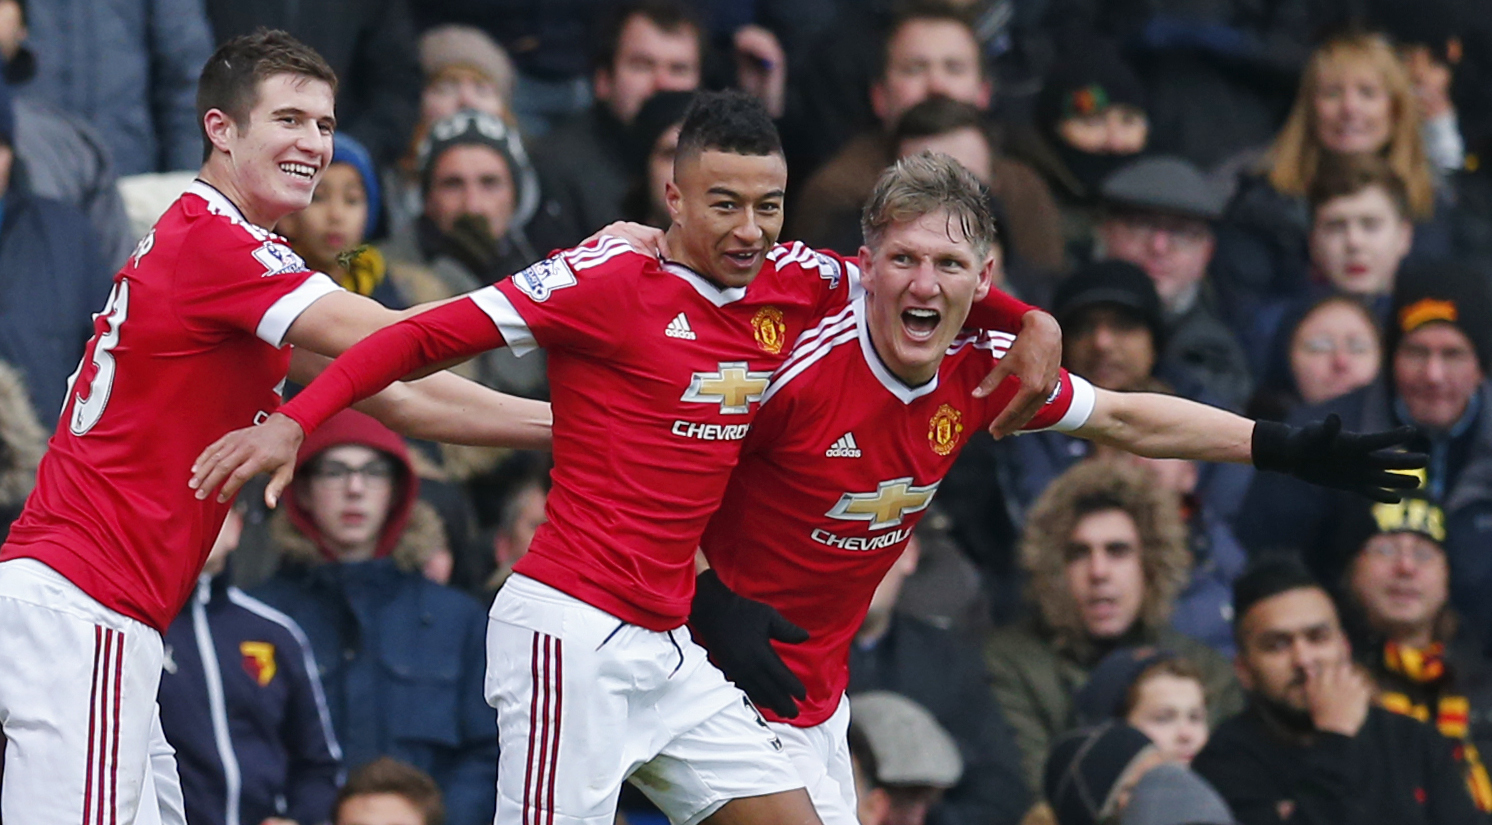 Bastian Schweinsteiger celebrates after scoring the second goal for Manchester United. Photo: Reuters